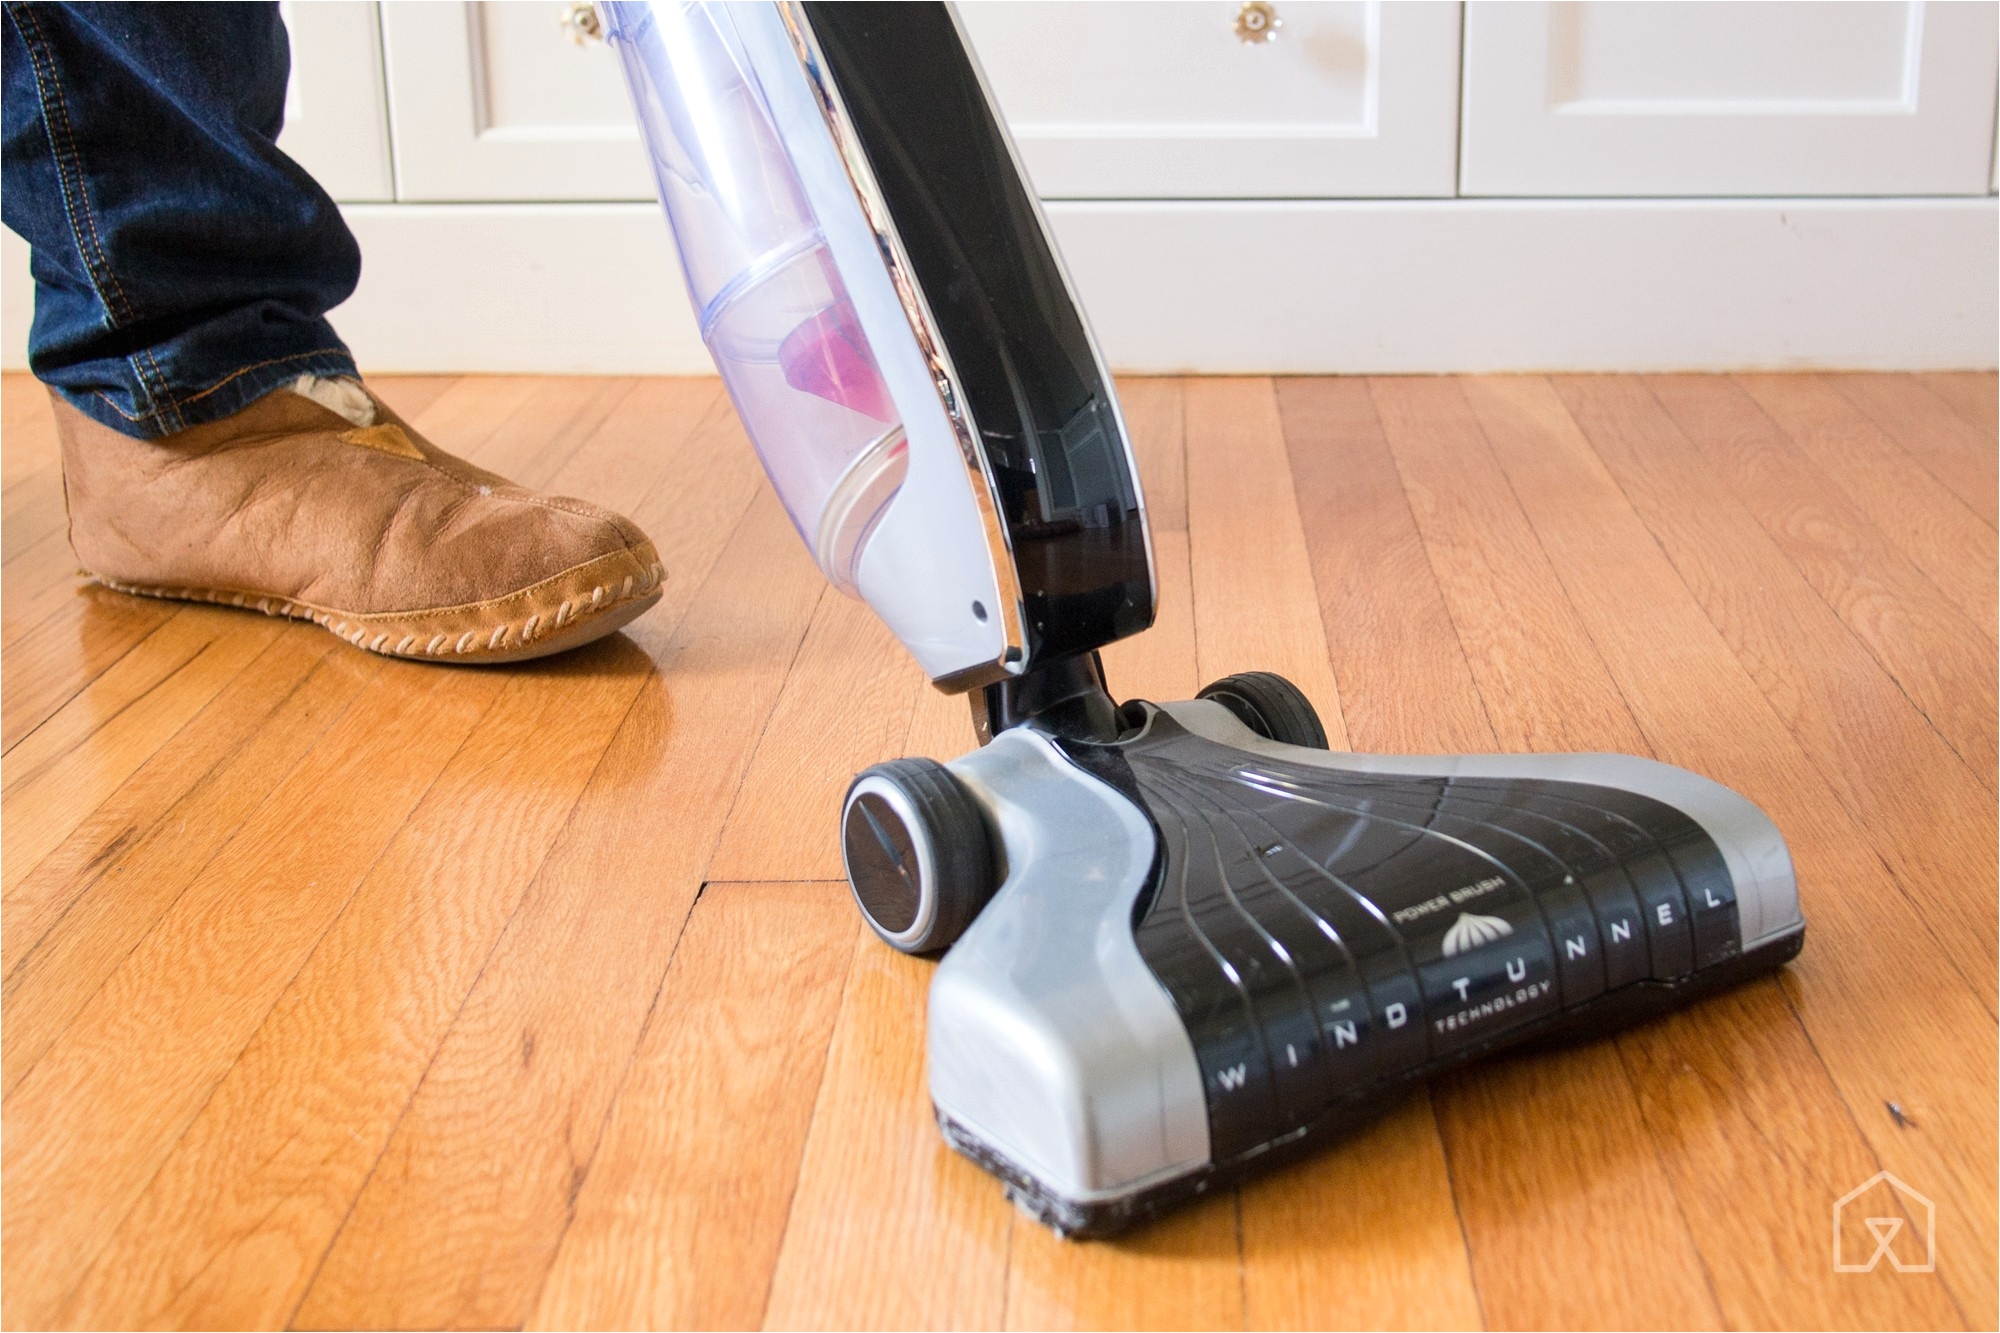 Shark Steam Mop Hardwood Floors Use Caution When Cleaning Flooring Elegant Wood Floor